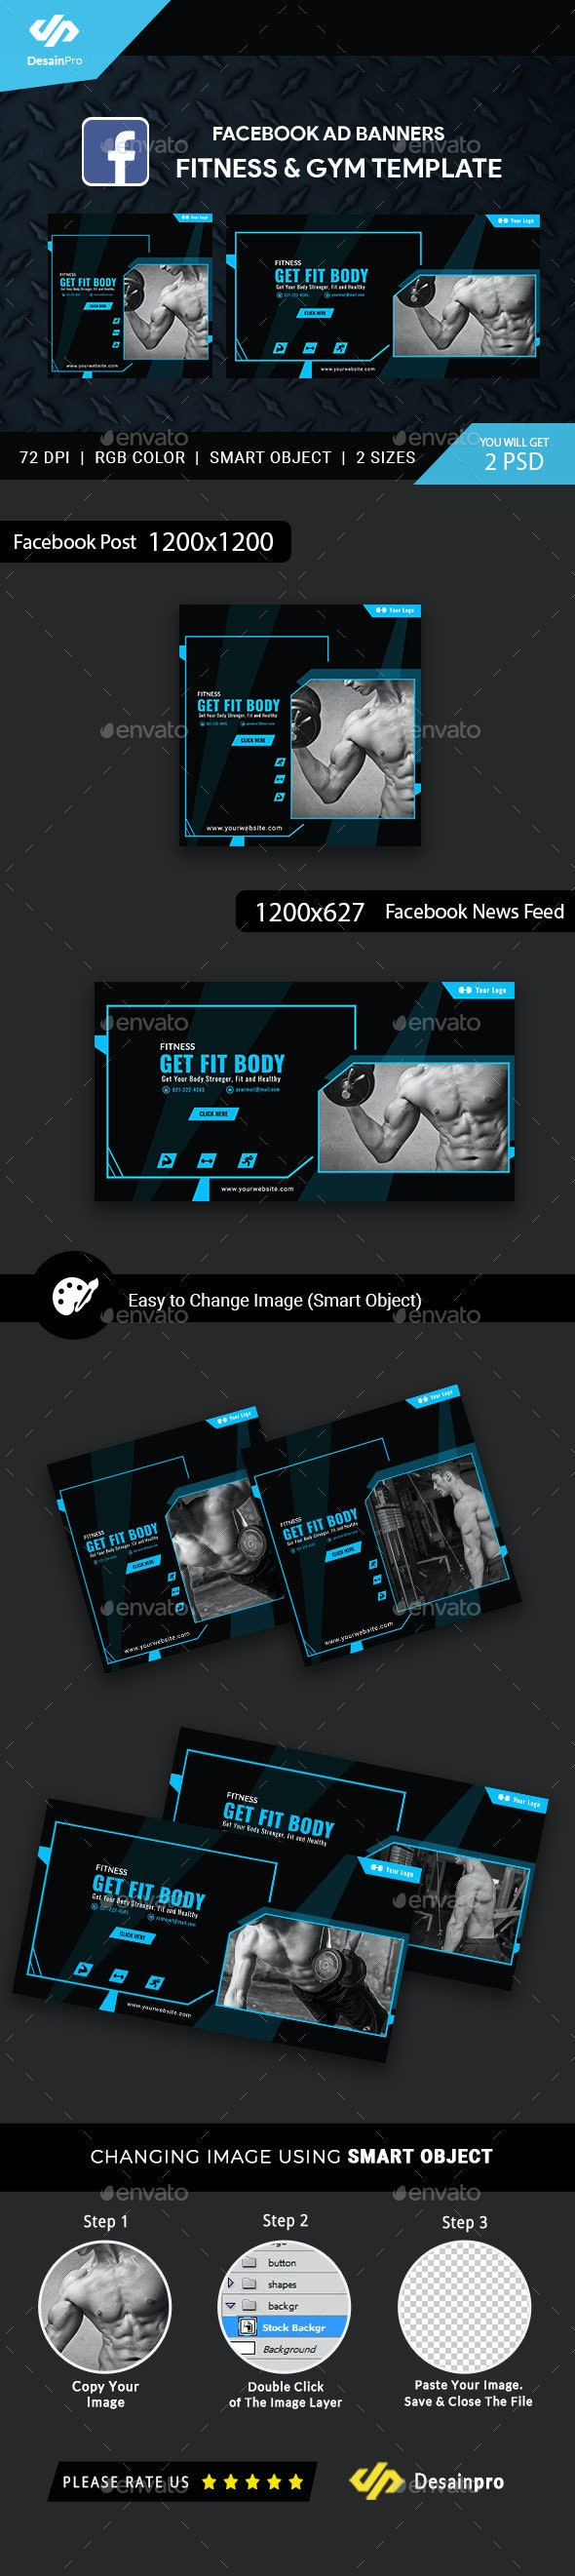 Fitness and Gym Facebook Ad Banners - AR by DesainPro